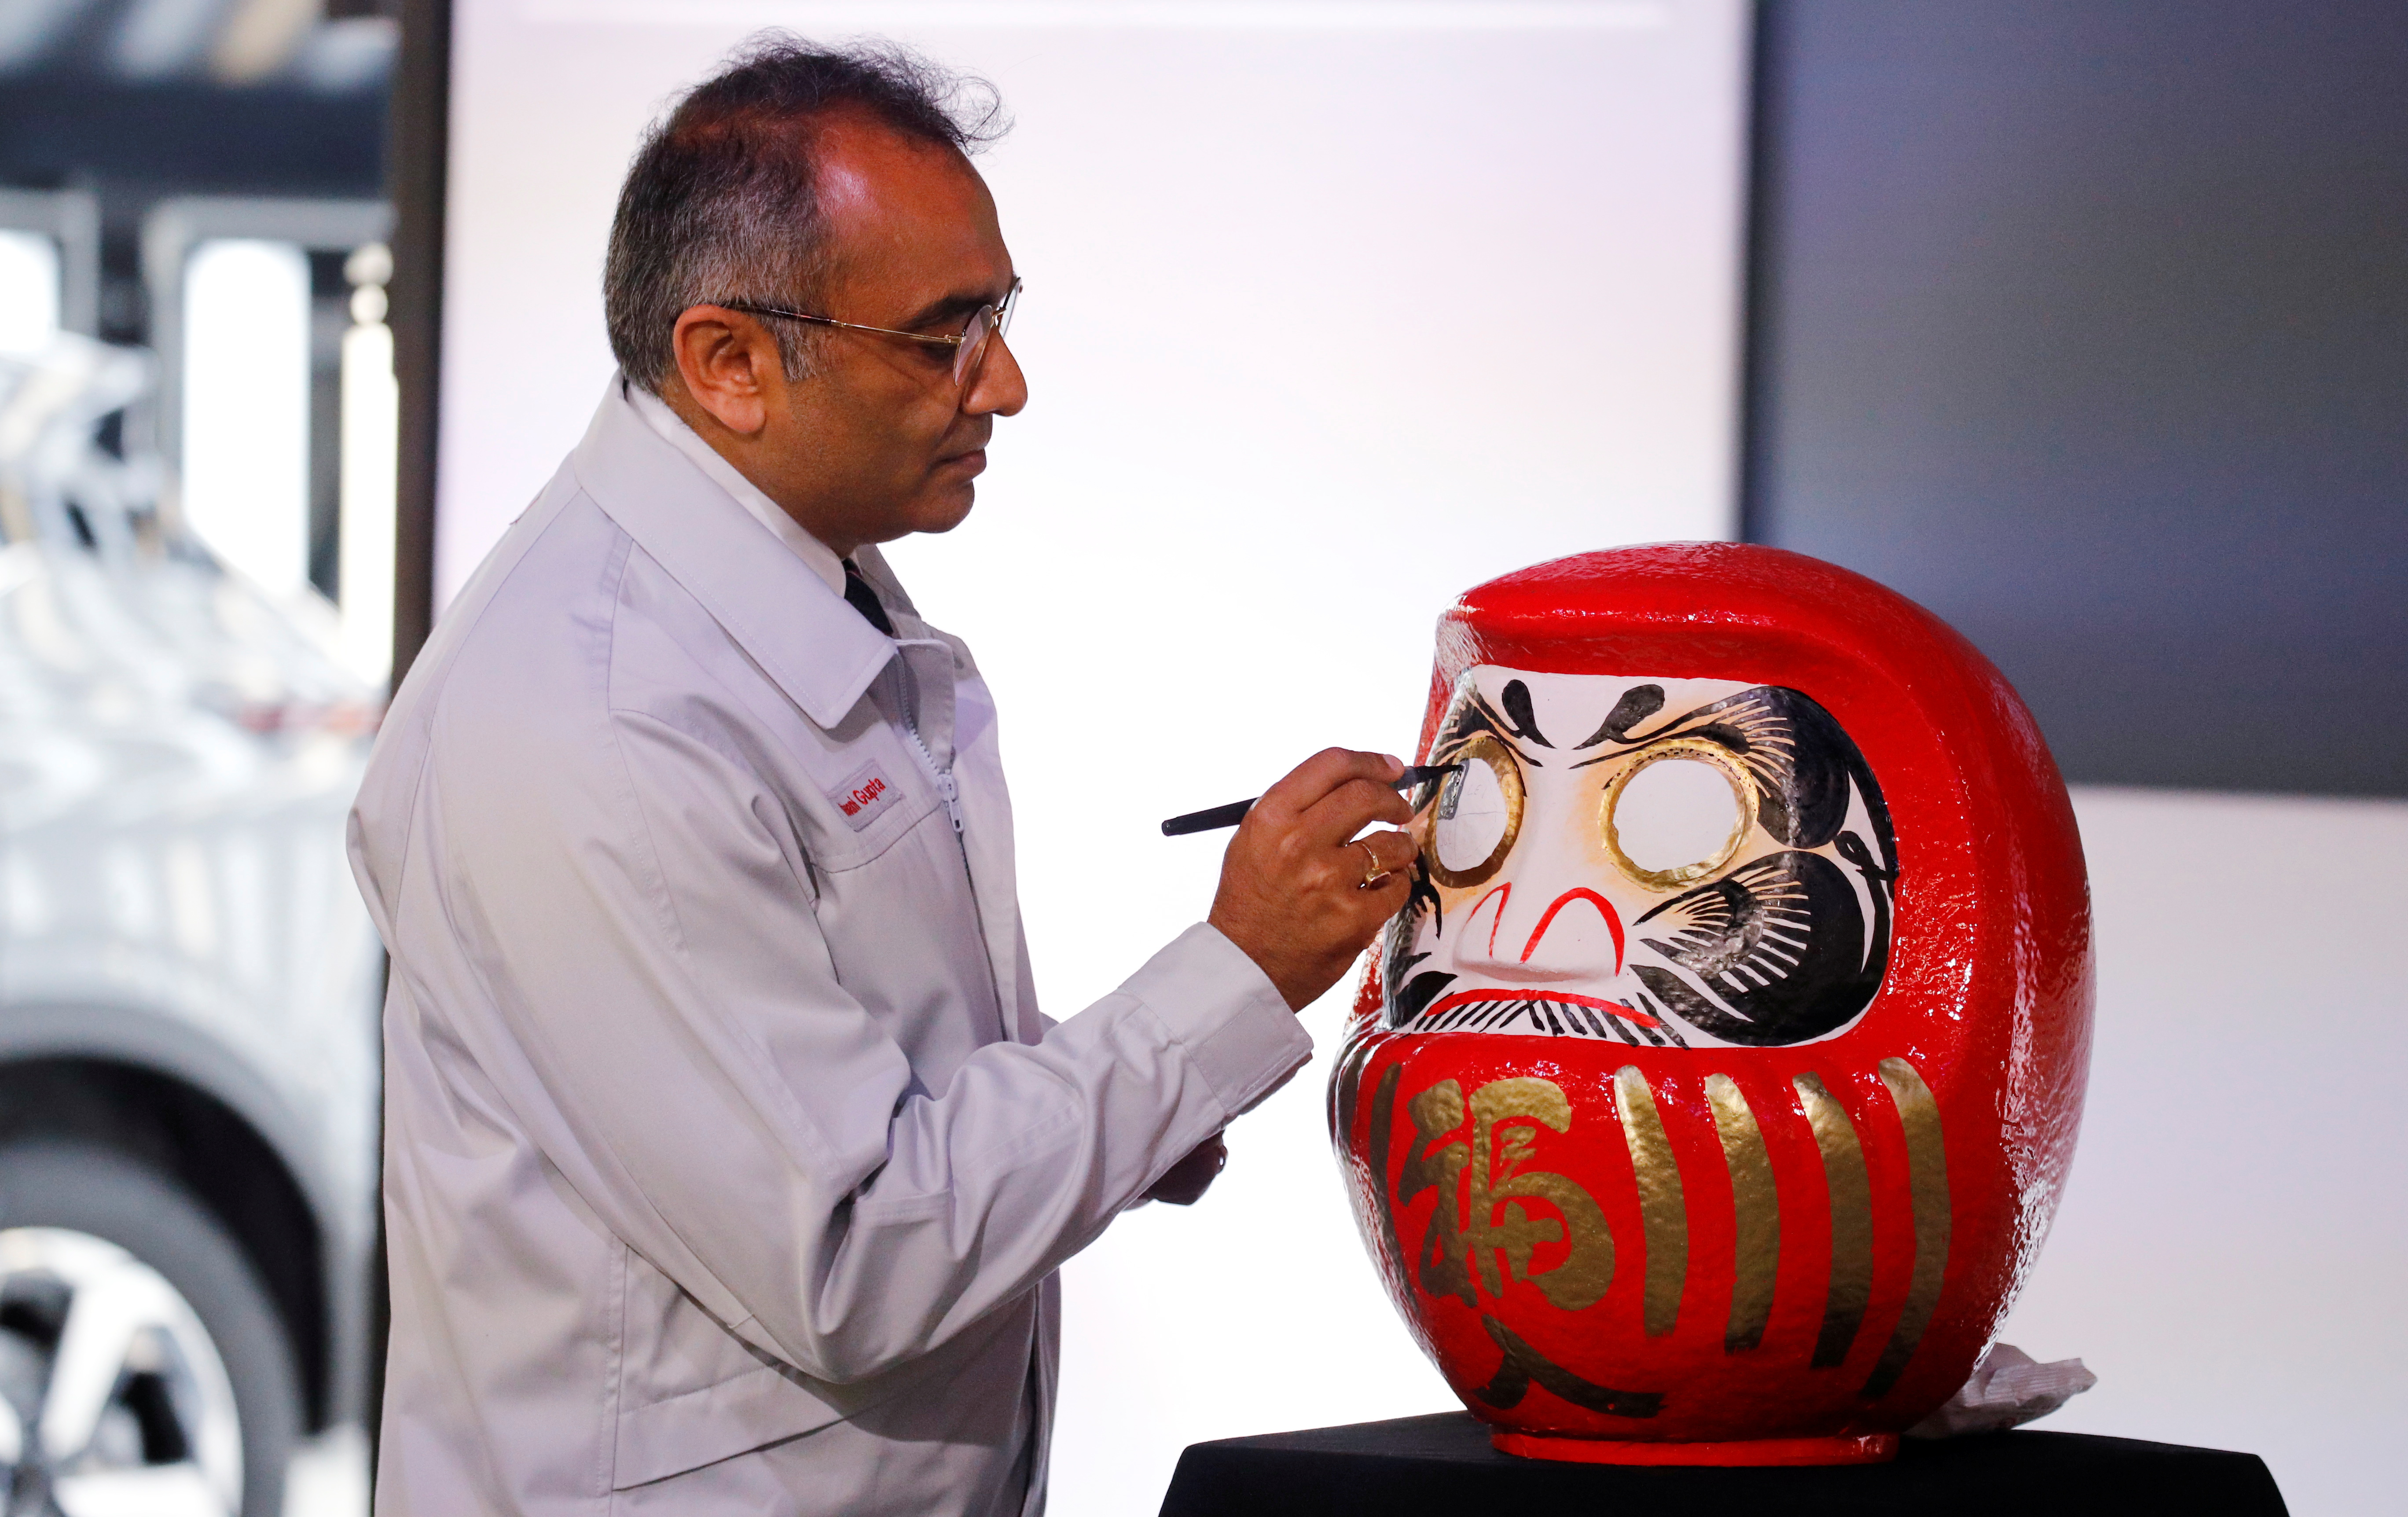 Ashwani Gupta, Nissan's chief operating officer, colours in the eye of a Duruma doll, a Japanese symbol of good luck, following a news conference at Nissan's Sunderland plant, Britain, July 1, 2021. REUTERS/Phil Noble